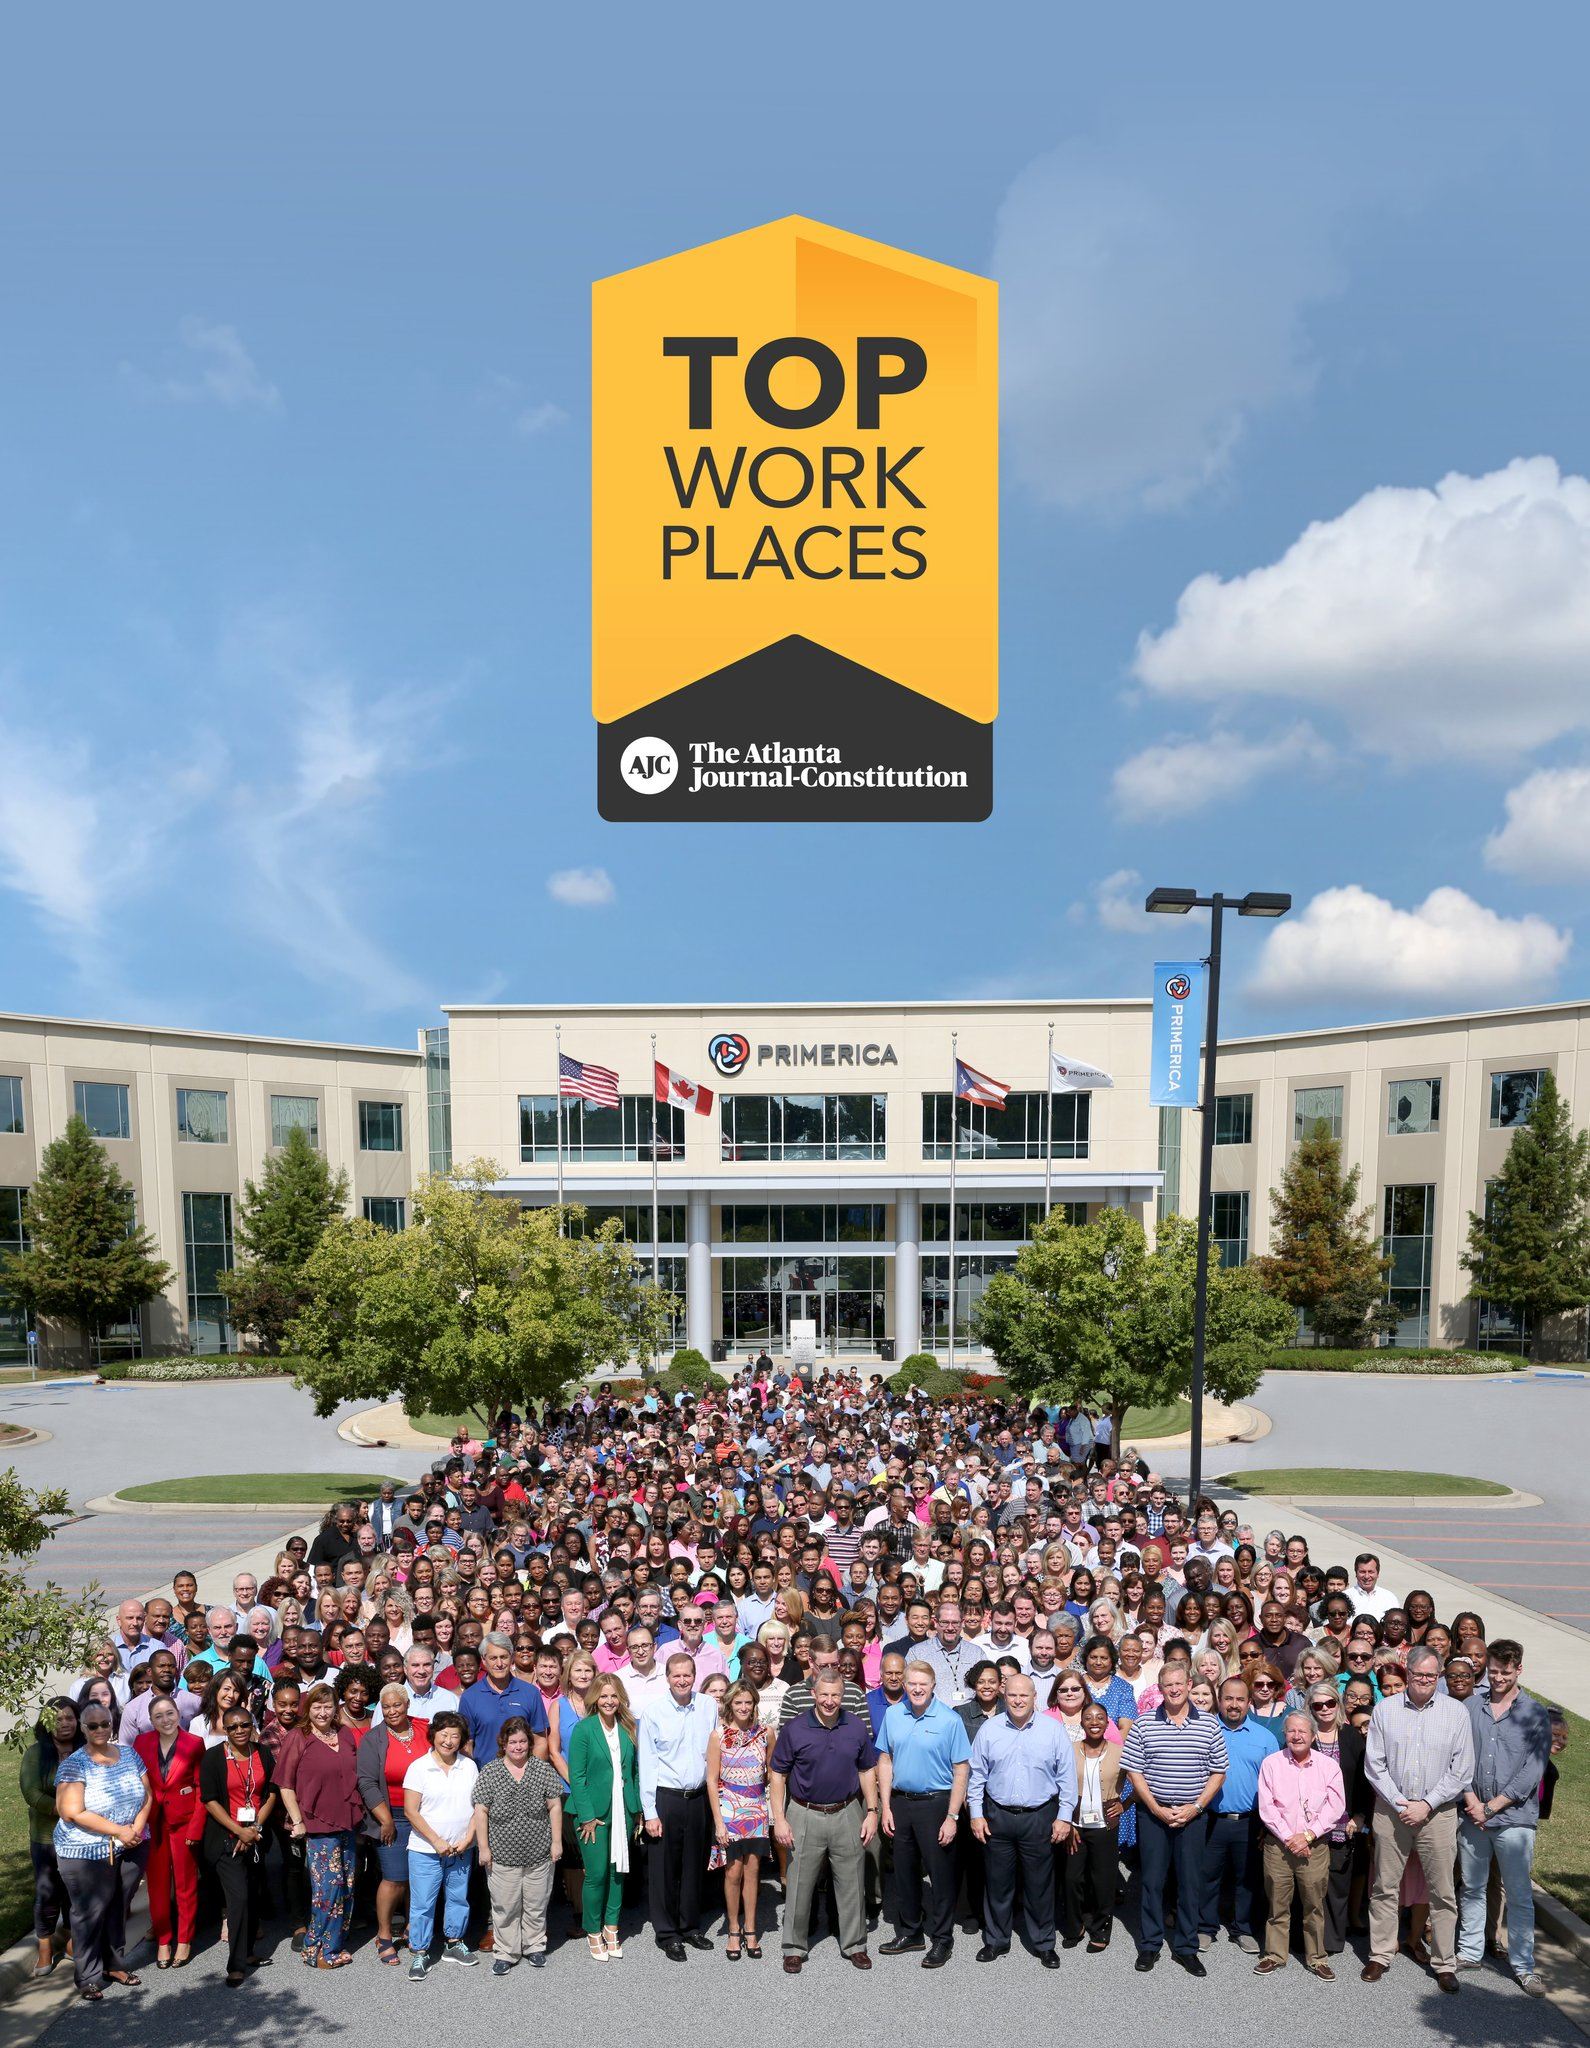 Primerica Named Top Workplace in AJC for 2019